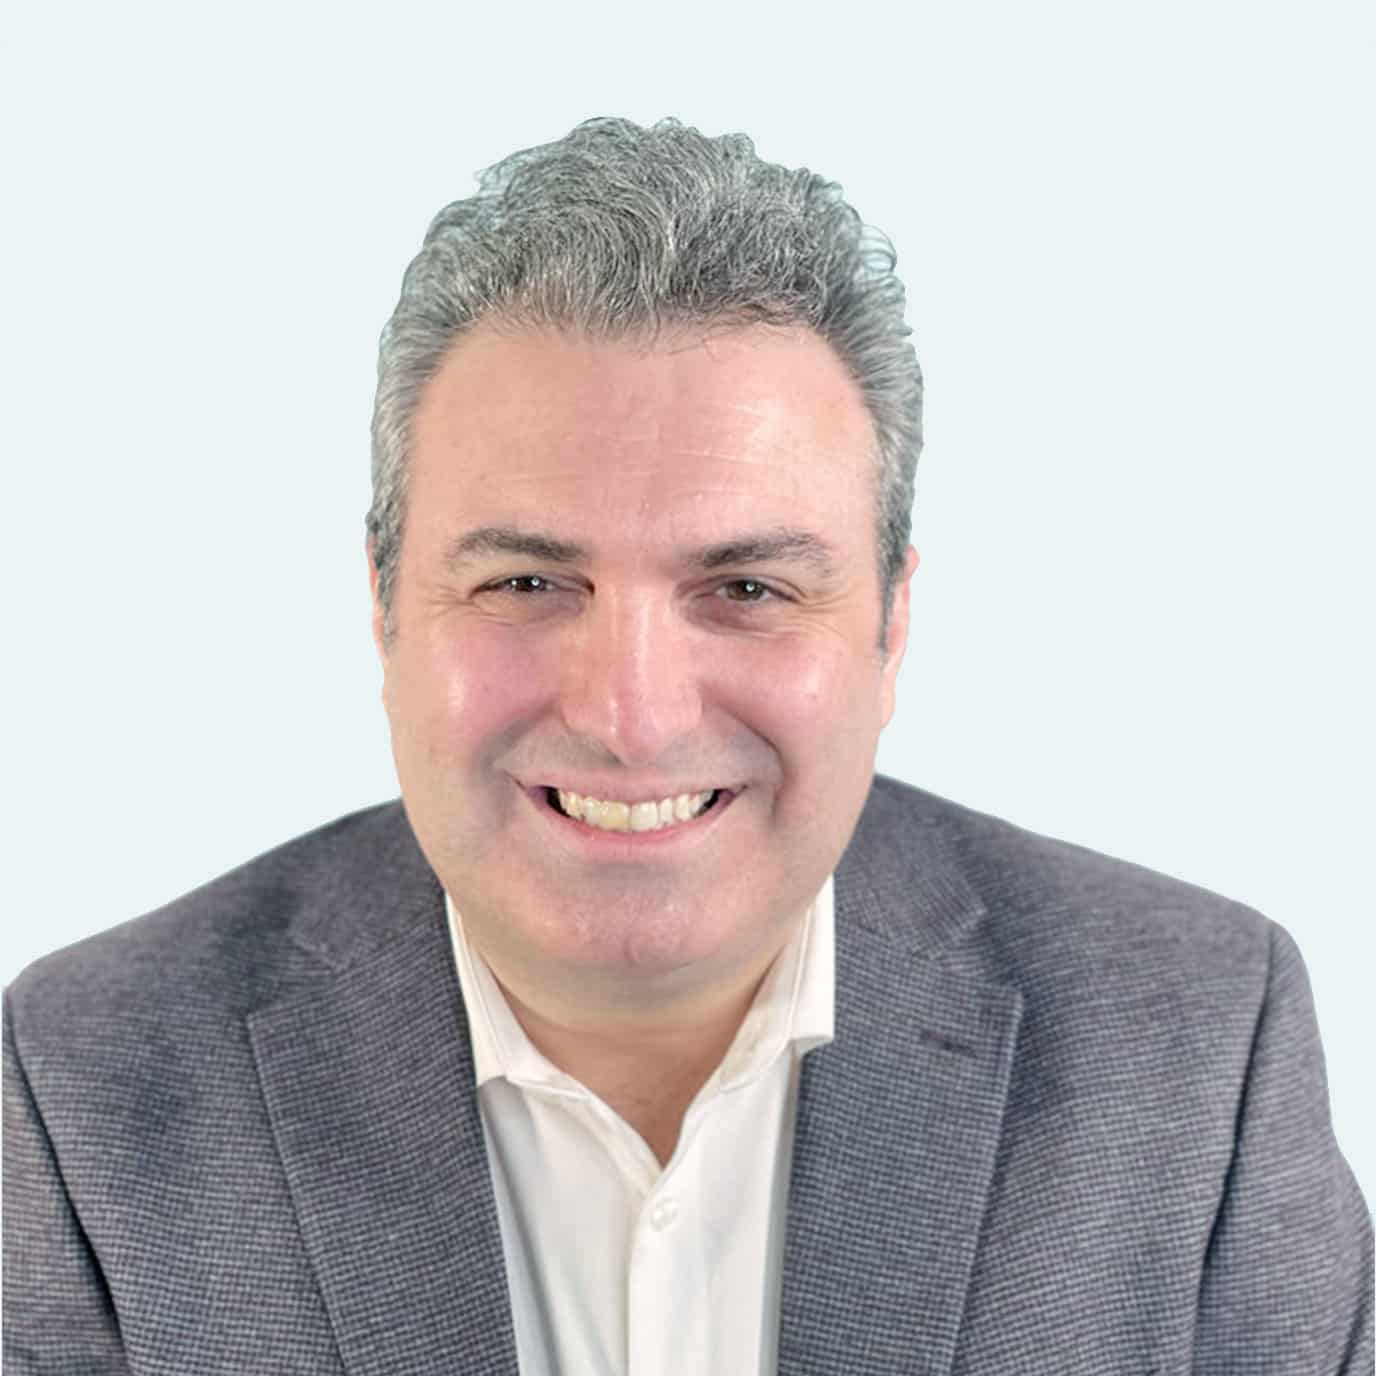 Dr. Gary Brucato, PhD psychologist in NYC at ClarityTherapyNYC